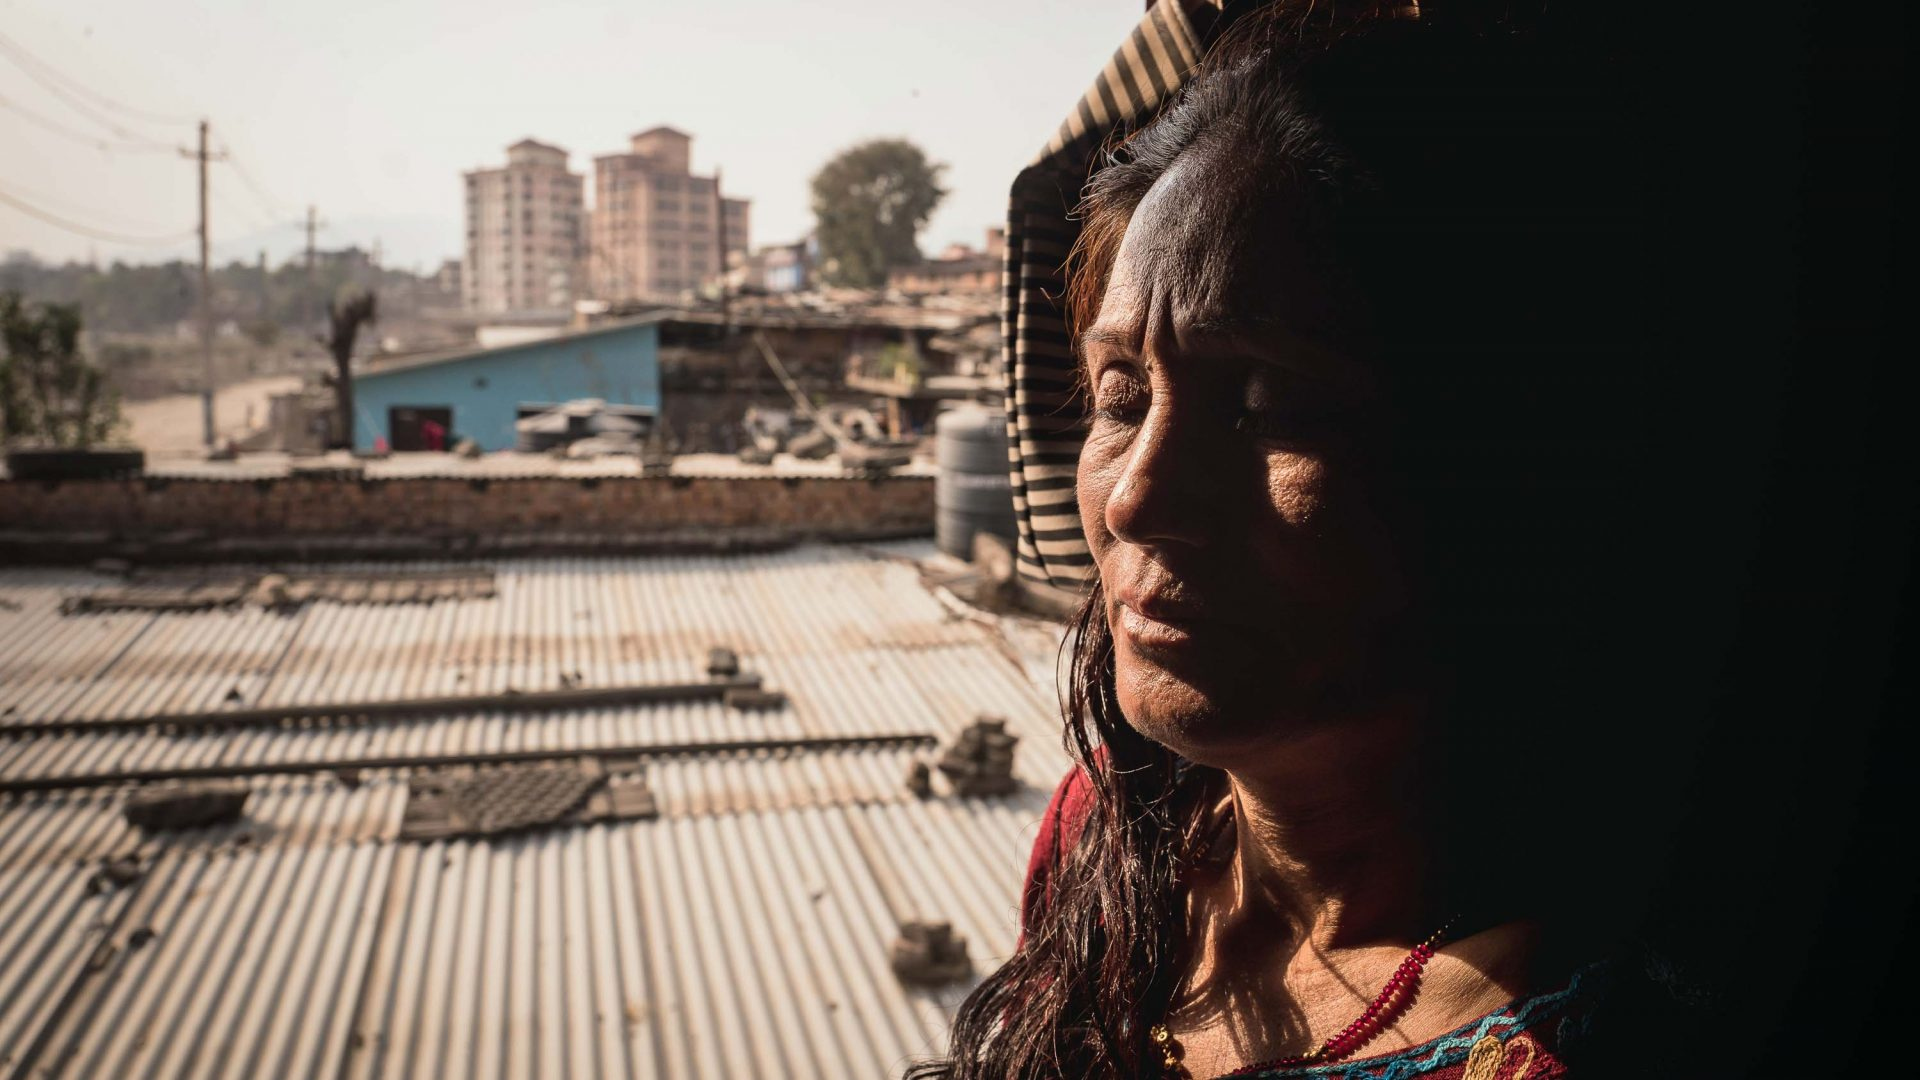 Sunita Thapa is 45 years old. Her husband was violent and beated her repeatedly before leaving her alone with two sons and two daughters. He disappeared and she has never heard from him again. At that point, without any resources, she moved to Banshighat, an settlement in Kathmandu.